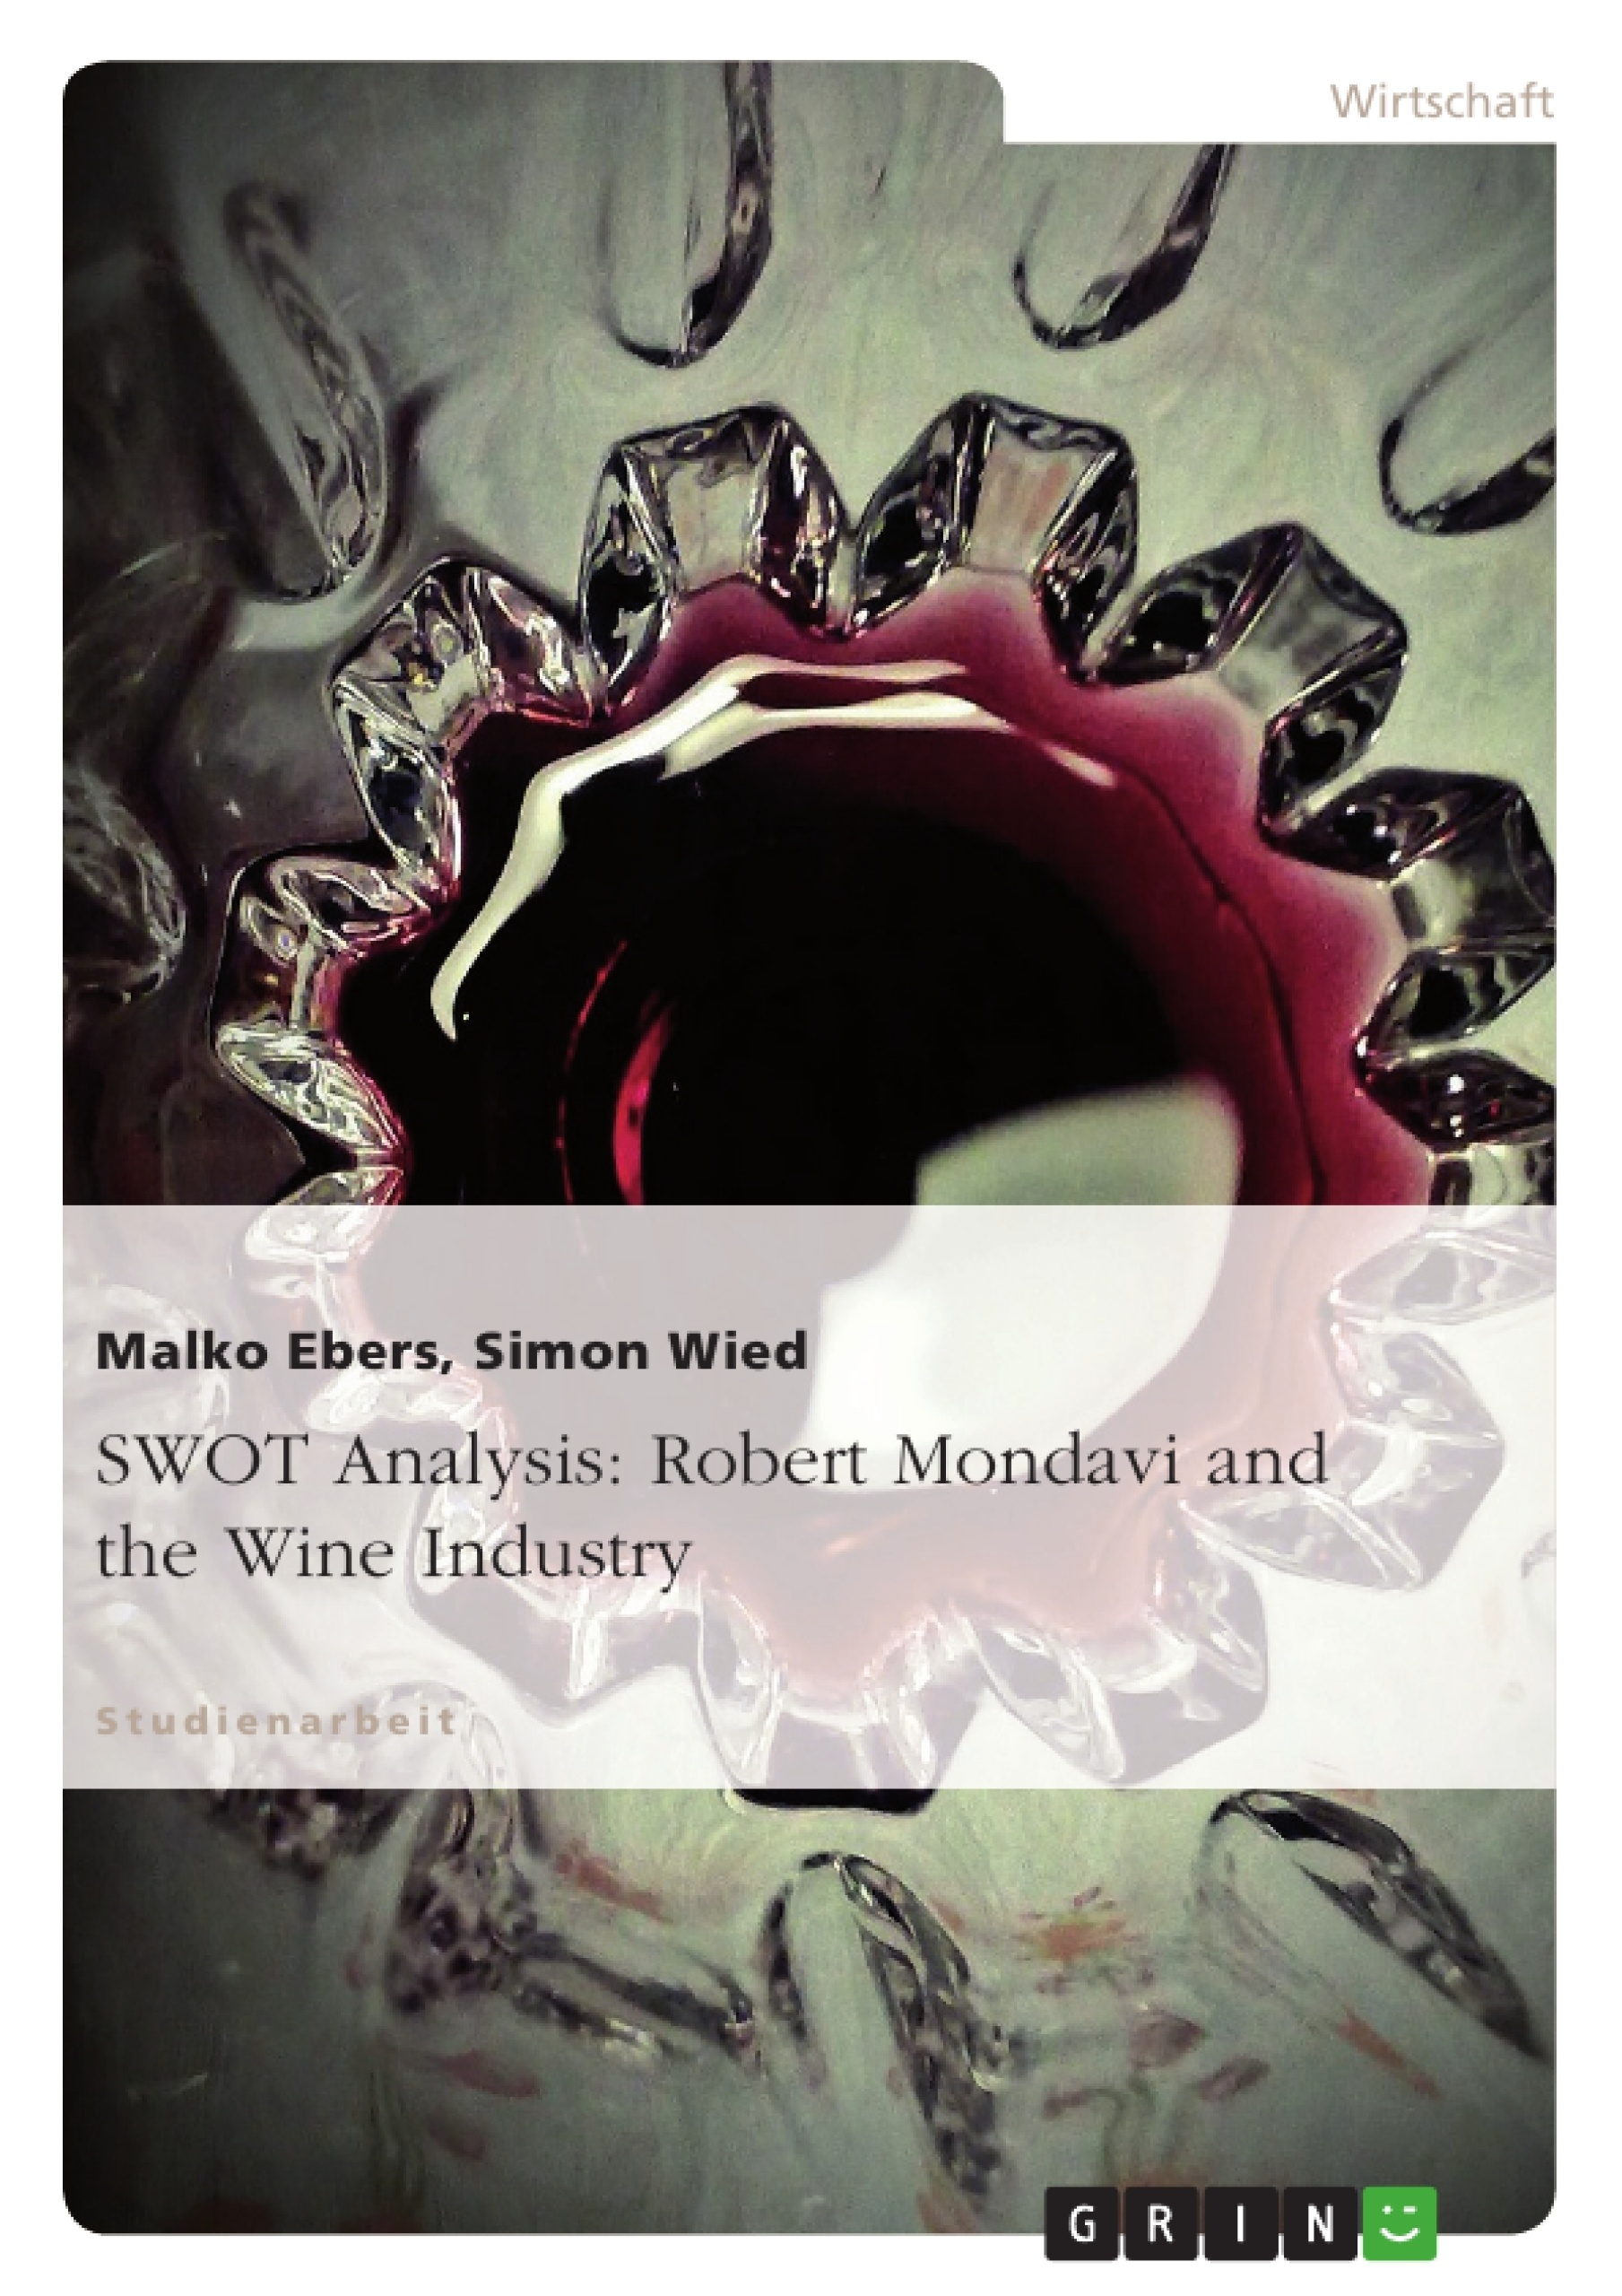 Title: SWOT Analysis: Robert Mondavi and the Wine Industry